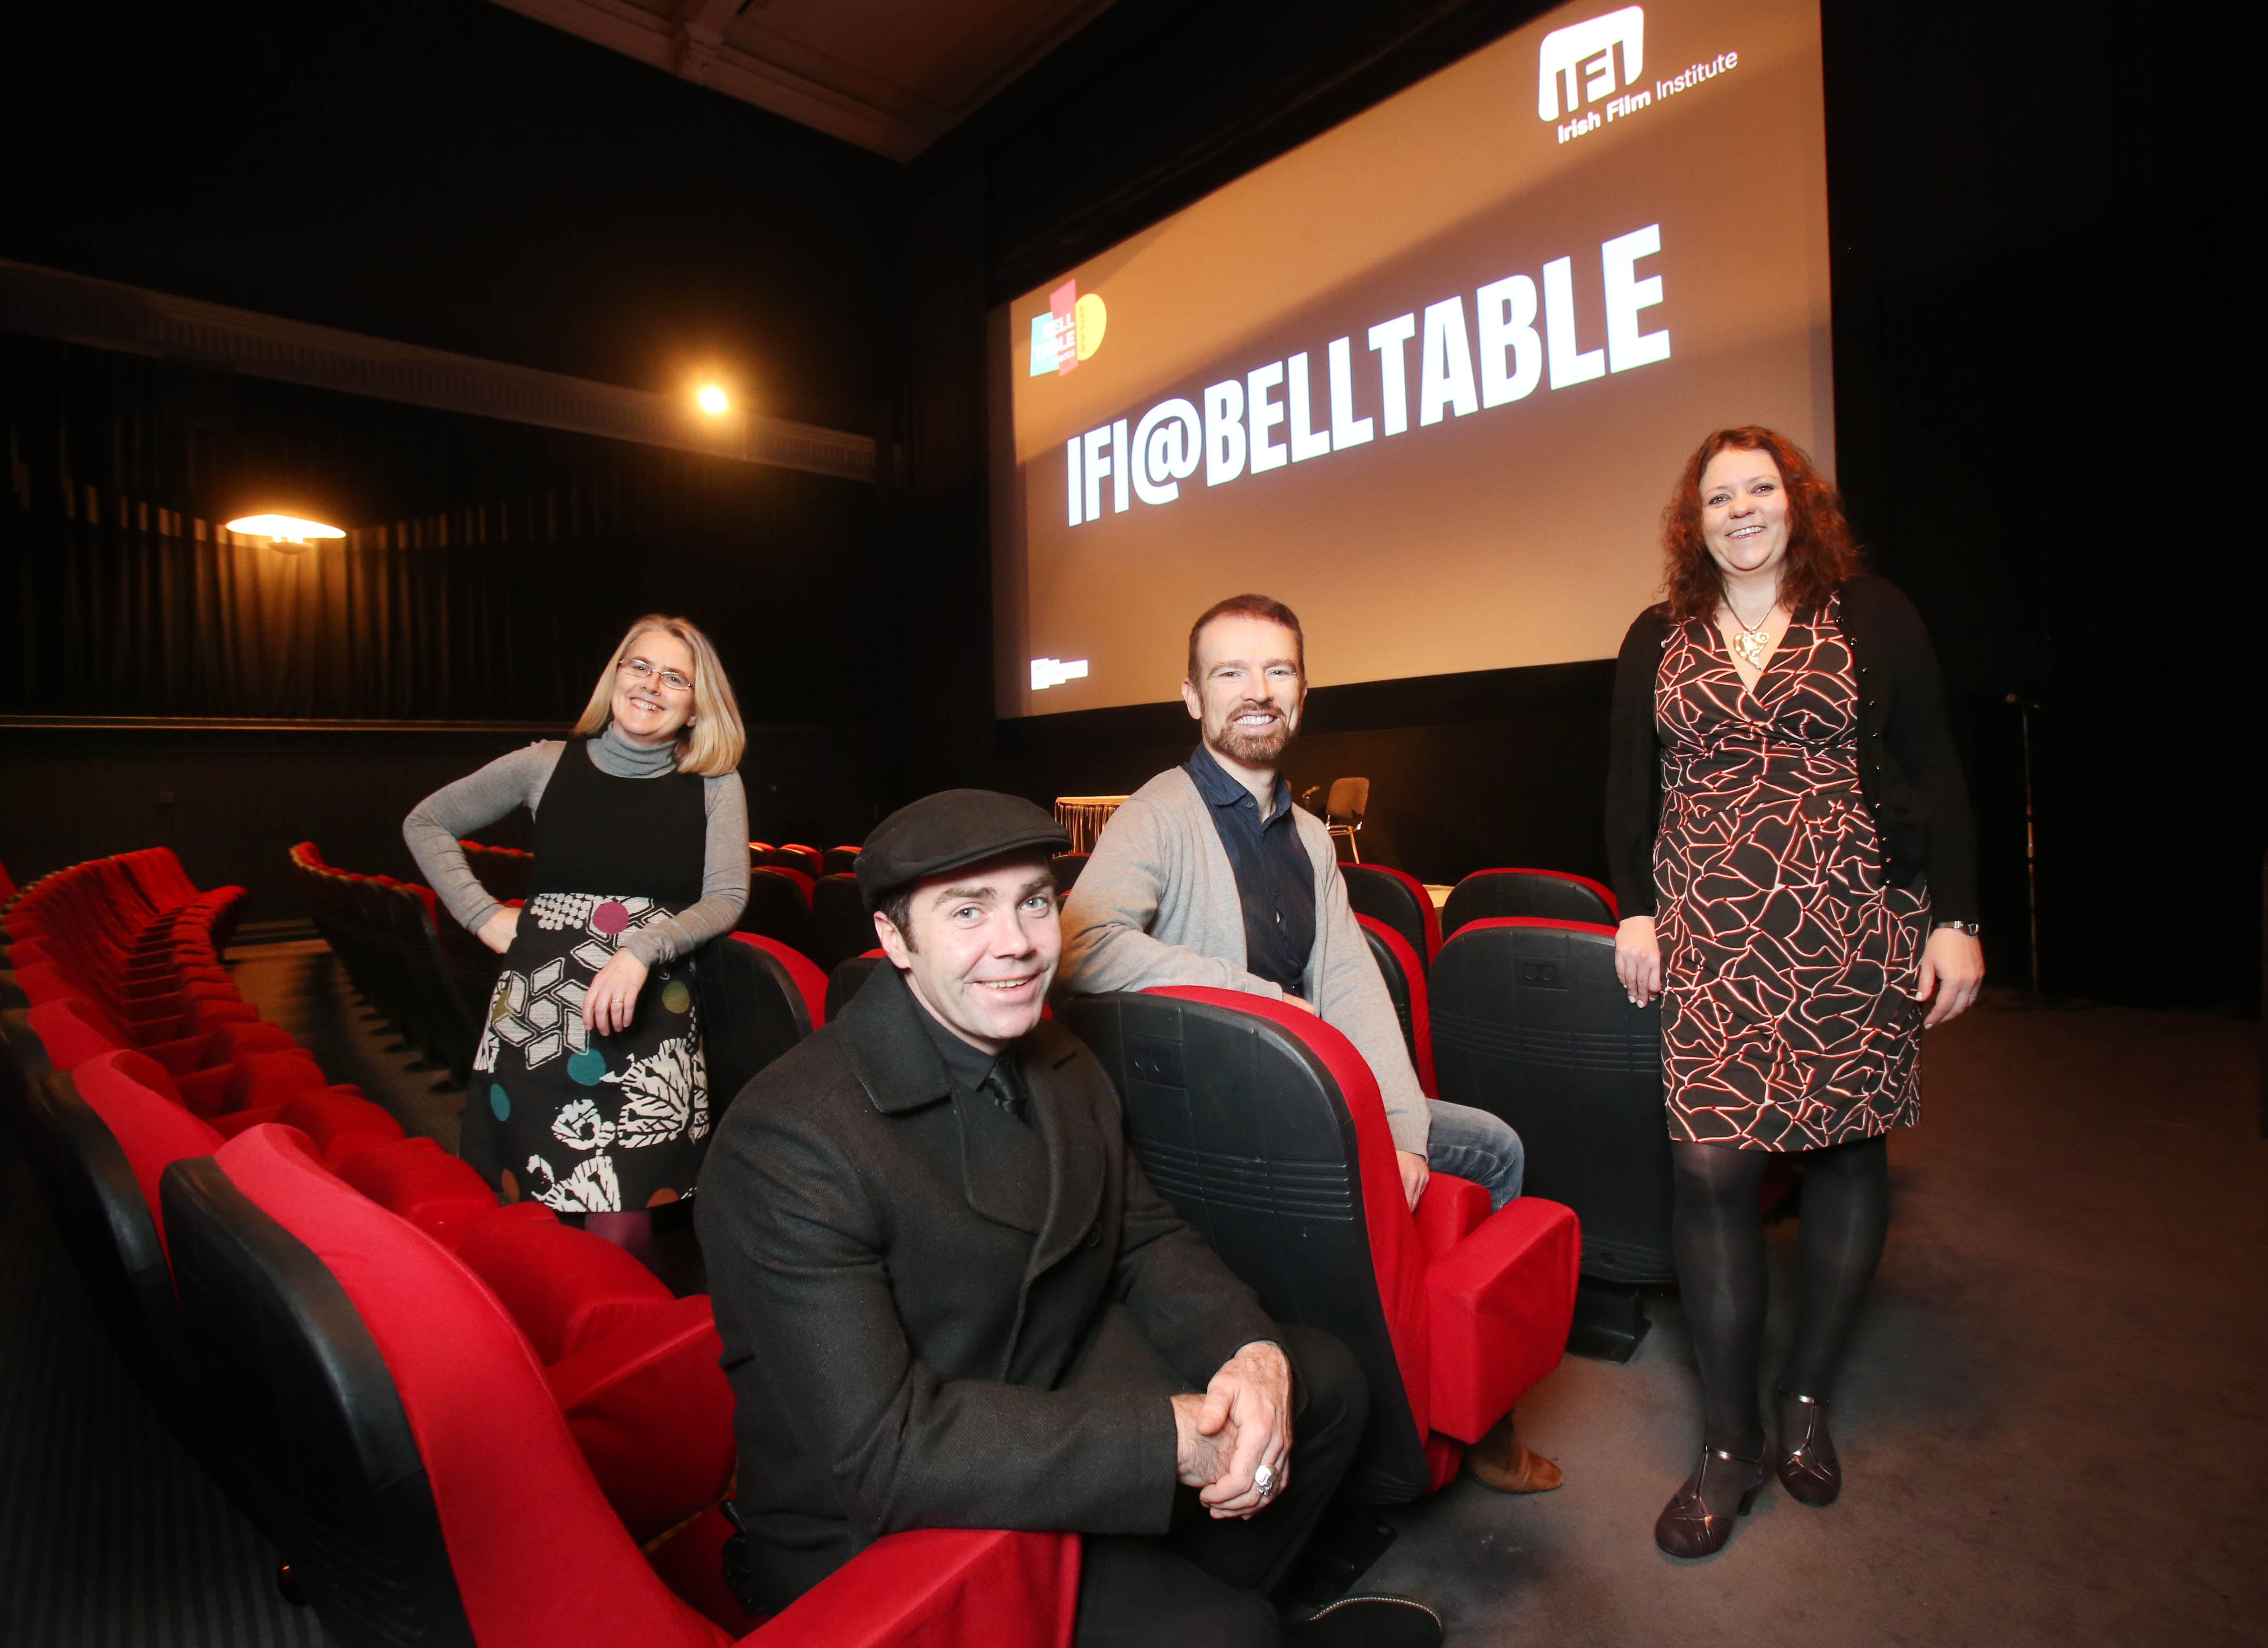 NO REPRO FEE. 5/12/2016. The Irish Film Institute and Belltable are delighted to announce a new partnership called IFI@Belltable. From January 2017 Limerick cinema audiences will enjoy films directly selected from the Irish Film Institute monthly programme. Actor Pat Ryan , Louise Donlon, Director of Lime Tree Theatre, Ross Keane Director of the IFI and Marketa Dowling, Programme Manager of Belltable were in the IFI this morning to announce this new partnership. Photo: Leon Farrell/Photocall Ireland.